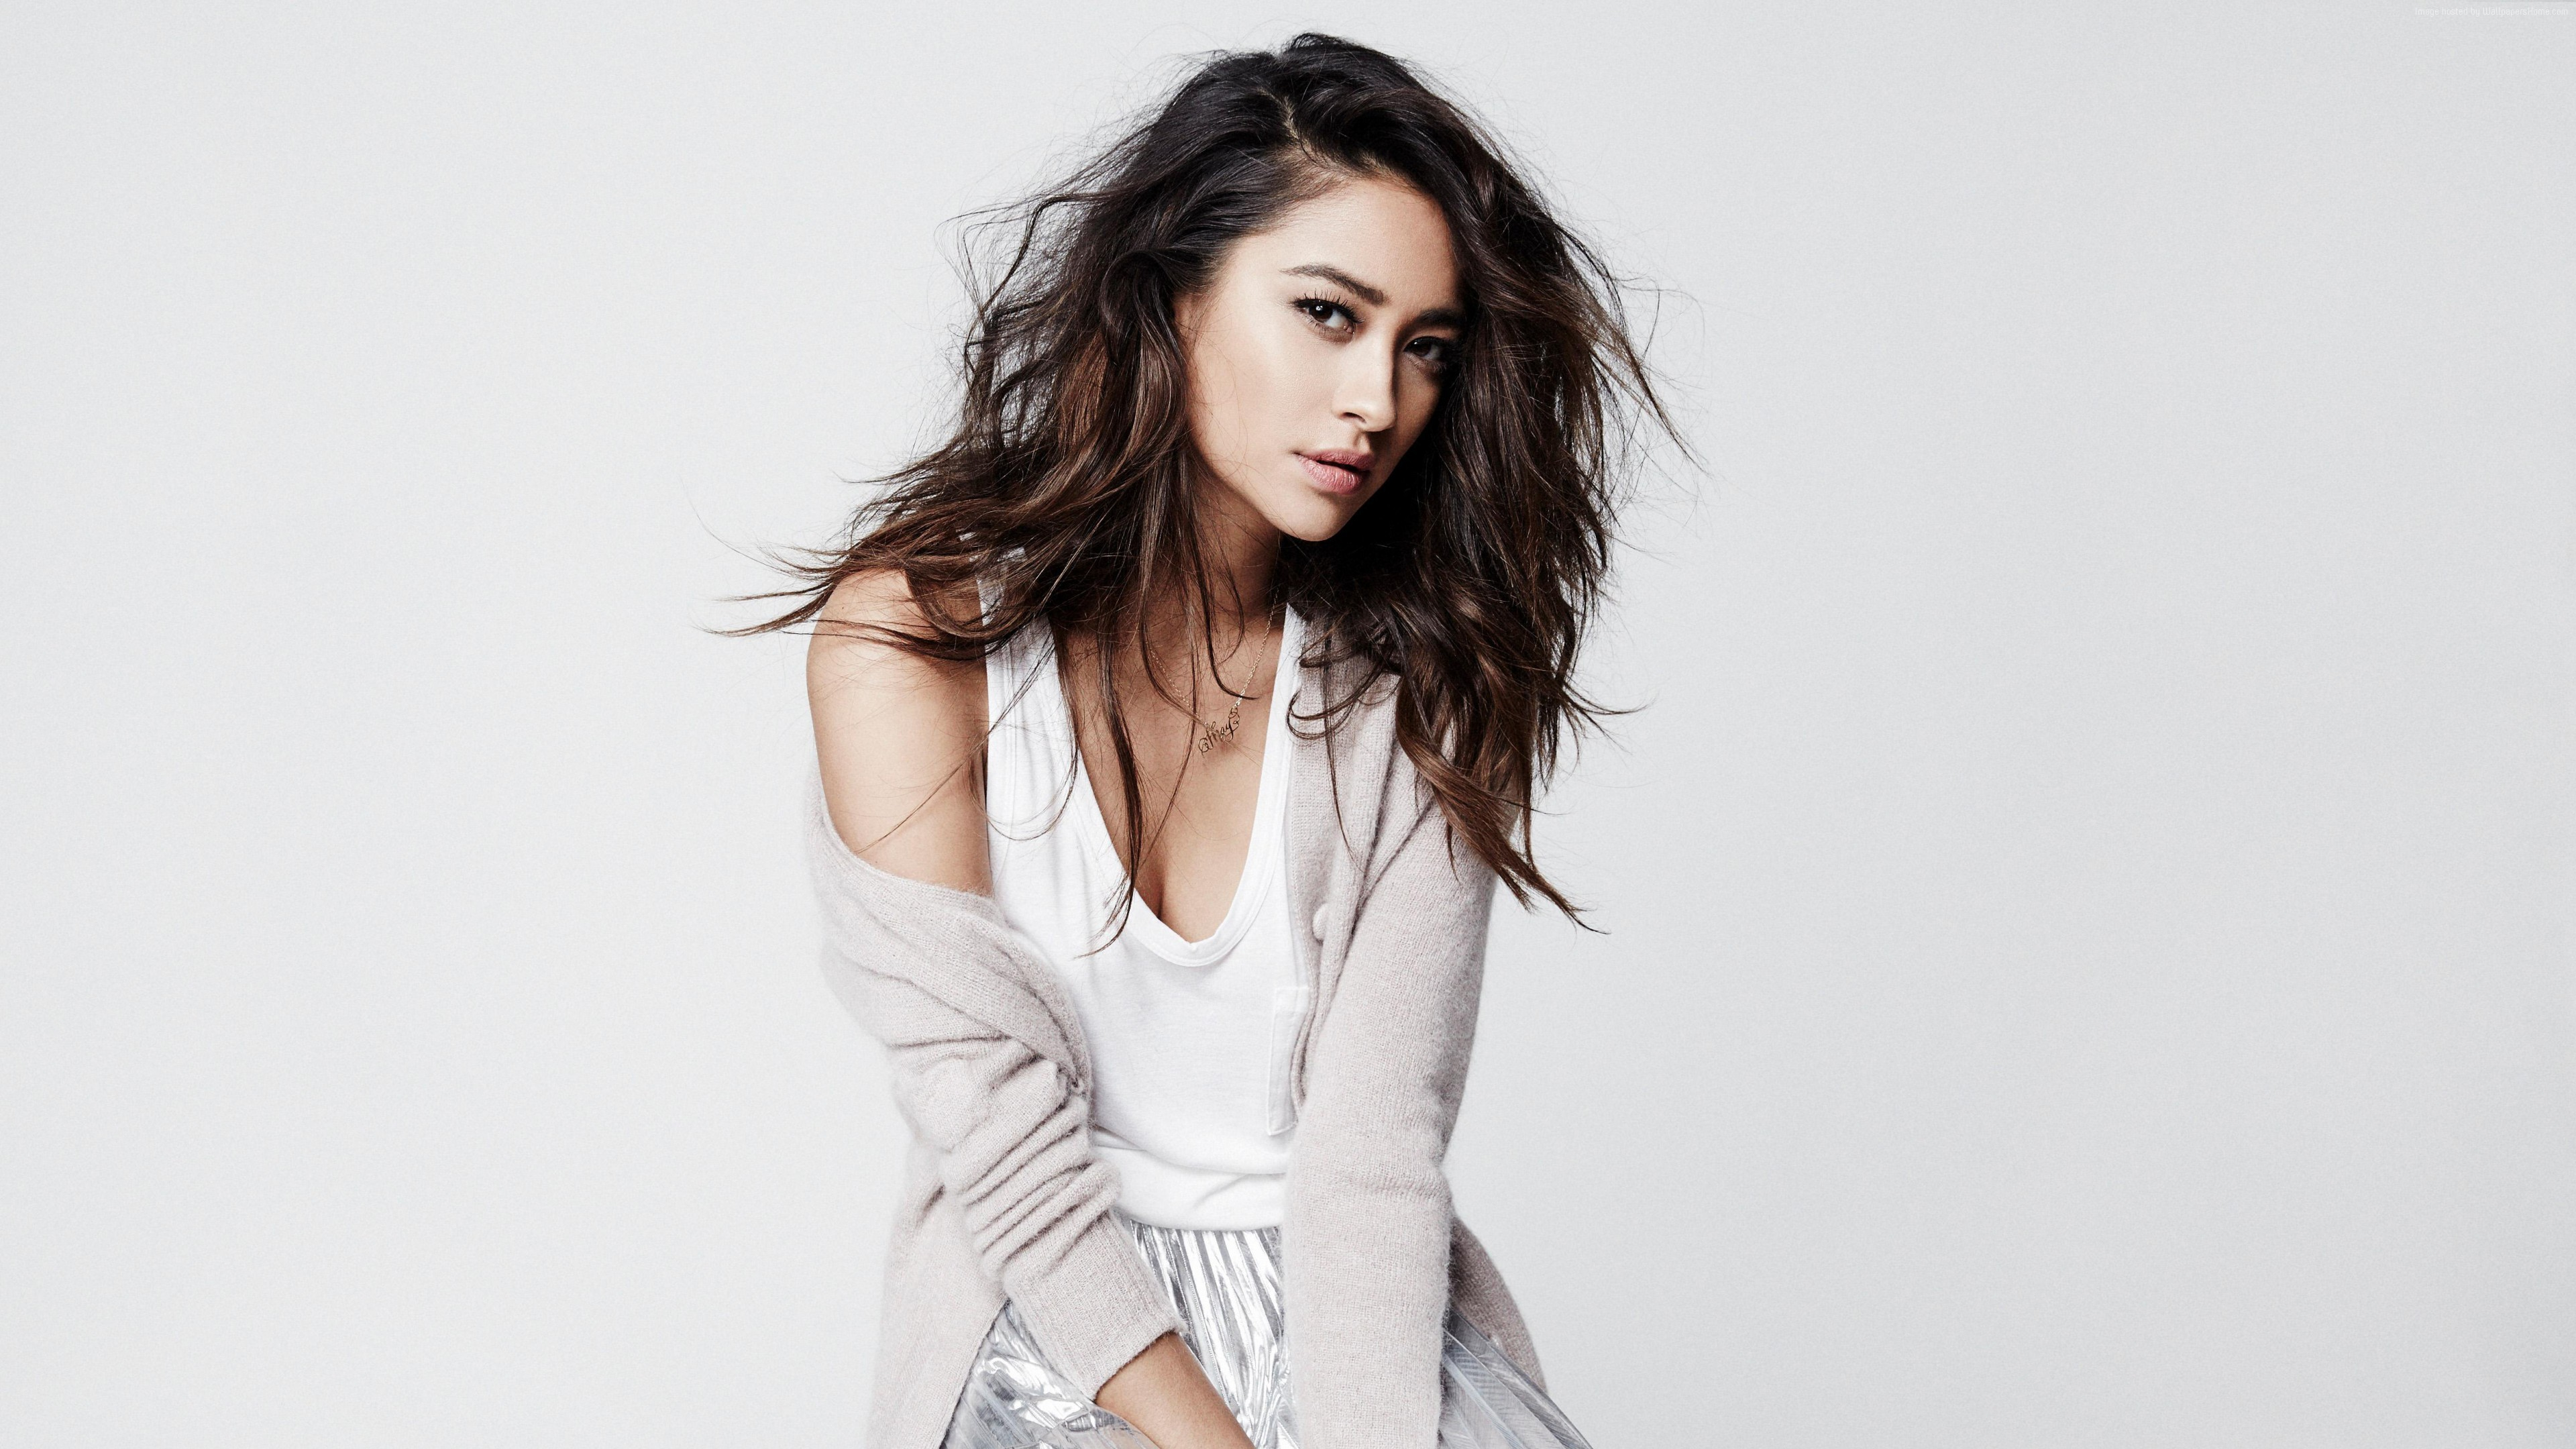 Wallpaper Shay Mitchell, hot, 4k, Girls